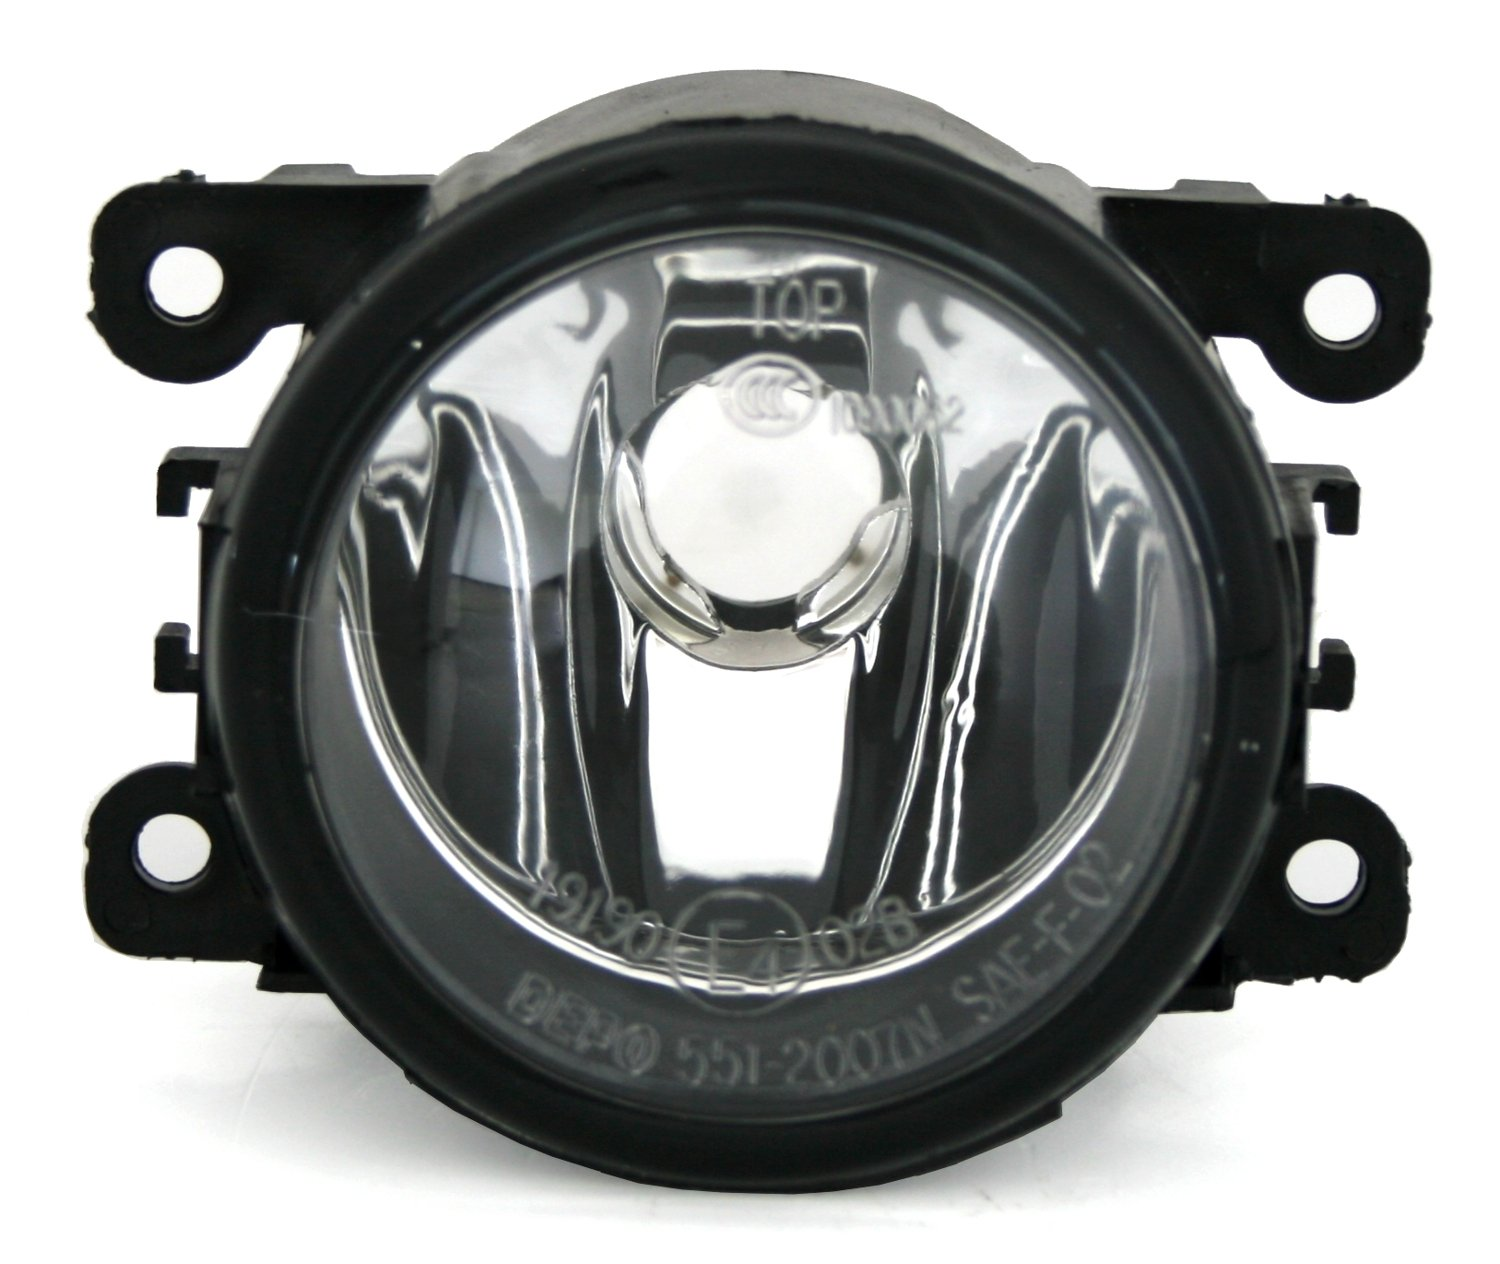 1 KG Fog Light Left or Right Side H11/ Halogen QTY AD Tuning GmbH /& Co